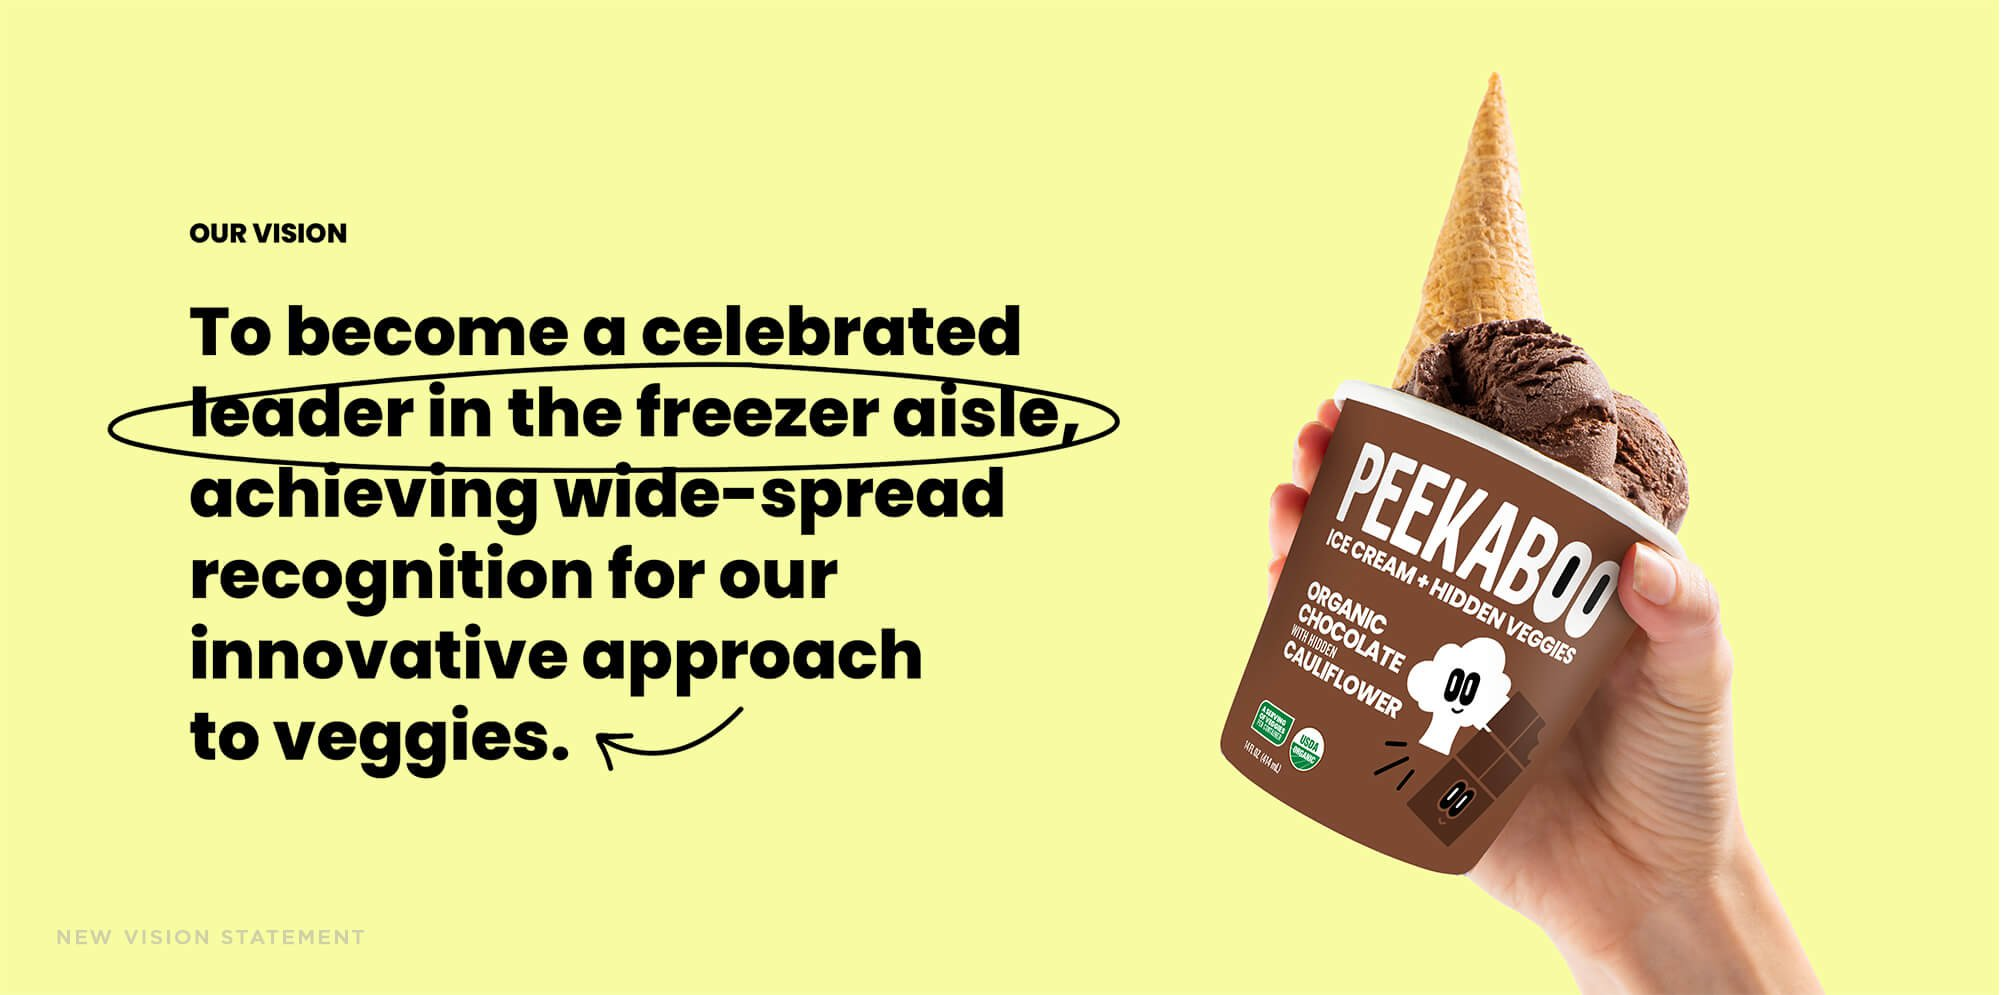 "Jacober rebranding of Peekaboo Ice Cream. Photo of new vision statement: ""To become a celebrated leader in the freezer aisle achieving wide-spread recognition for our innovative approach to veggies."